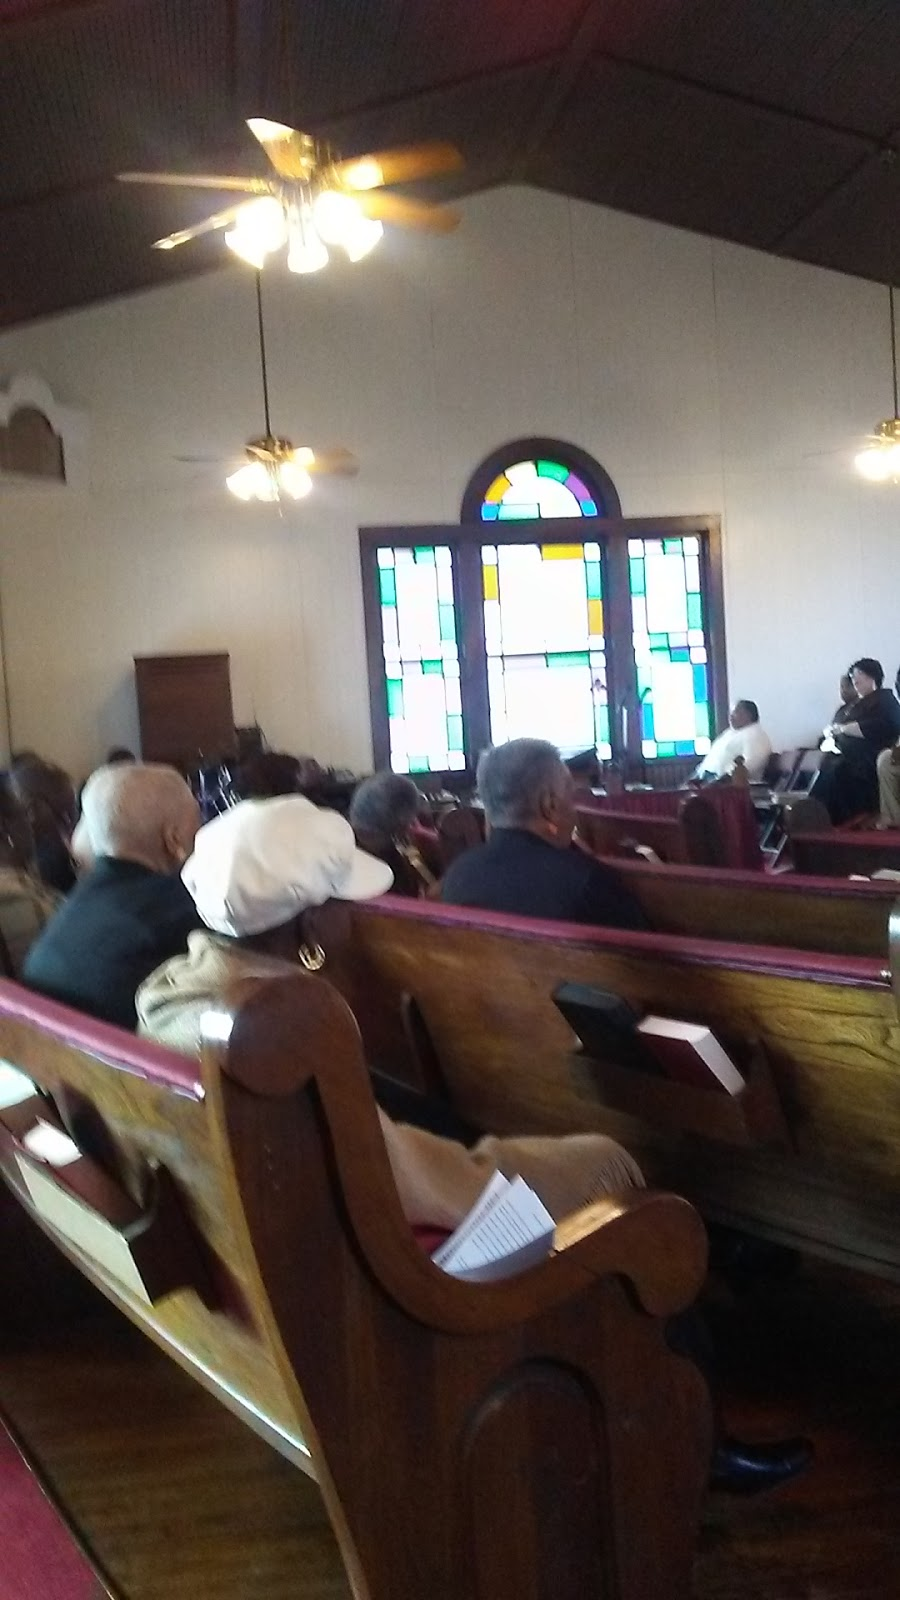 Tyree Ame Church - church    Photo 1 of 5   Address: 9004 Trappe Rd, Berlin, MD 21811, USA   Phone: (410) 641-1915